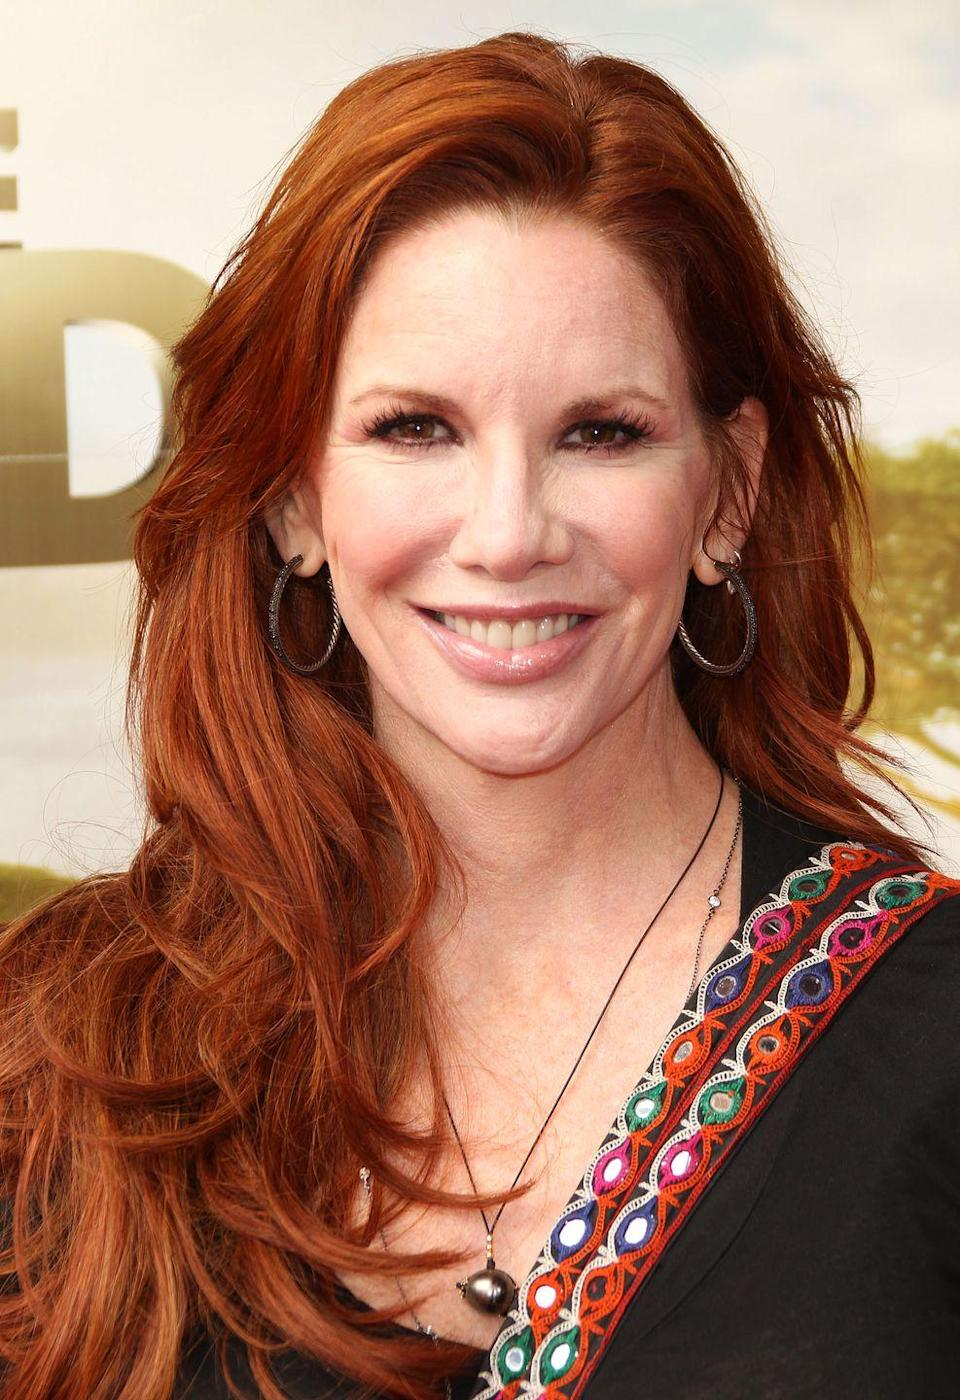 "<p>In 2015, <em>Little House on the Prairie </em>alumna Melissa Gilbert revealed in a blog post titled ""<a href=""http://melissasmidlifemusings.blogspot.com/2014/12/a-tale-of-two-titties.html"" rel=""nofollow noopener"" target=""_blank"" data-ylk=""slk:A Tale Of Two Titties"" class=""link rapid-noclick-resp"">A Tale Of Two Titties</a>"" that she was having her breast implants removed. ""A. I am concerned for my health and 2. I don't like the way they look or feel,"" she explained in the post. ""Frankly, I'd like to be able to take a Zumba class without the fear that I'll end up with two black eyes.""</p>"